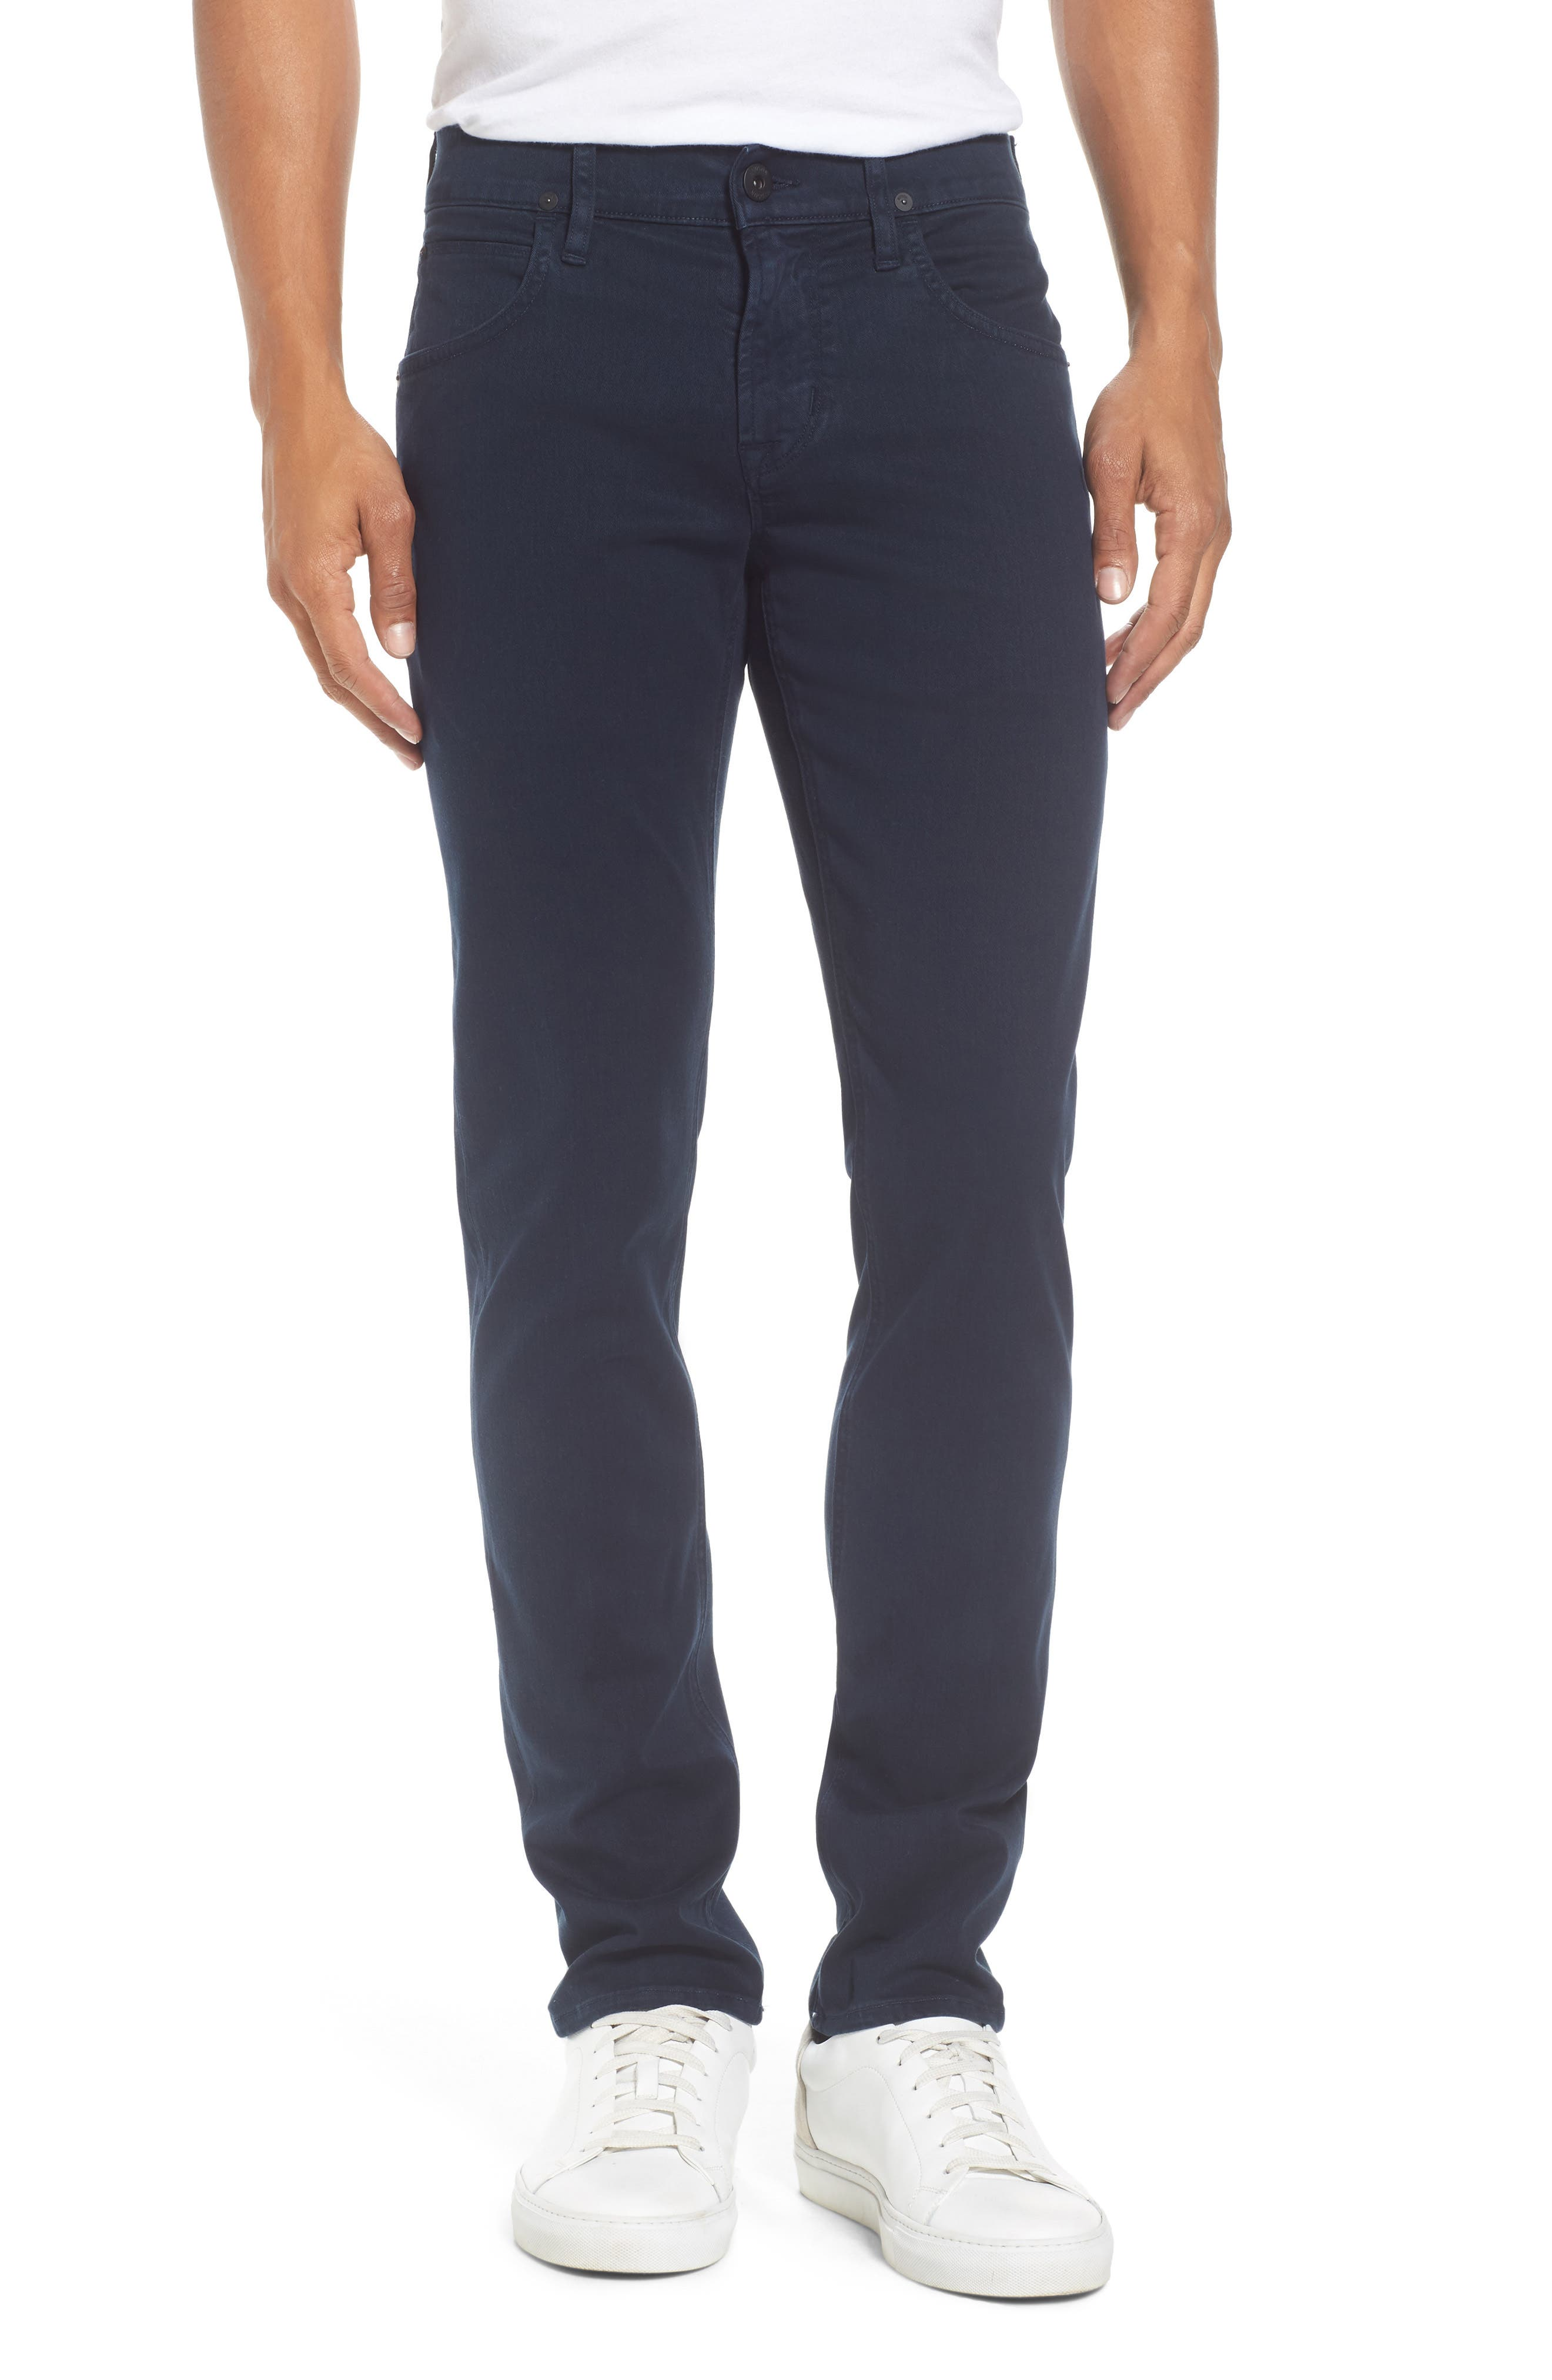 Blake Slim Fit Jeans,                             Main thumbnail 1, color,                             Polar